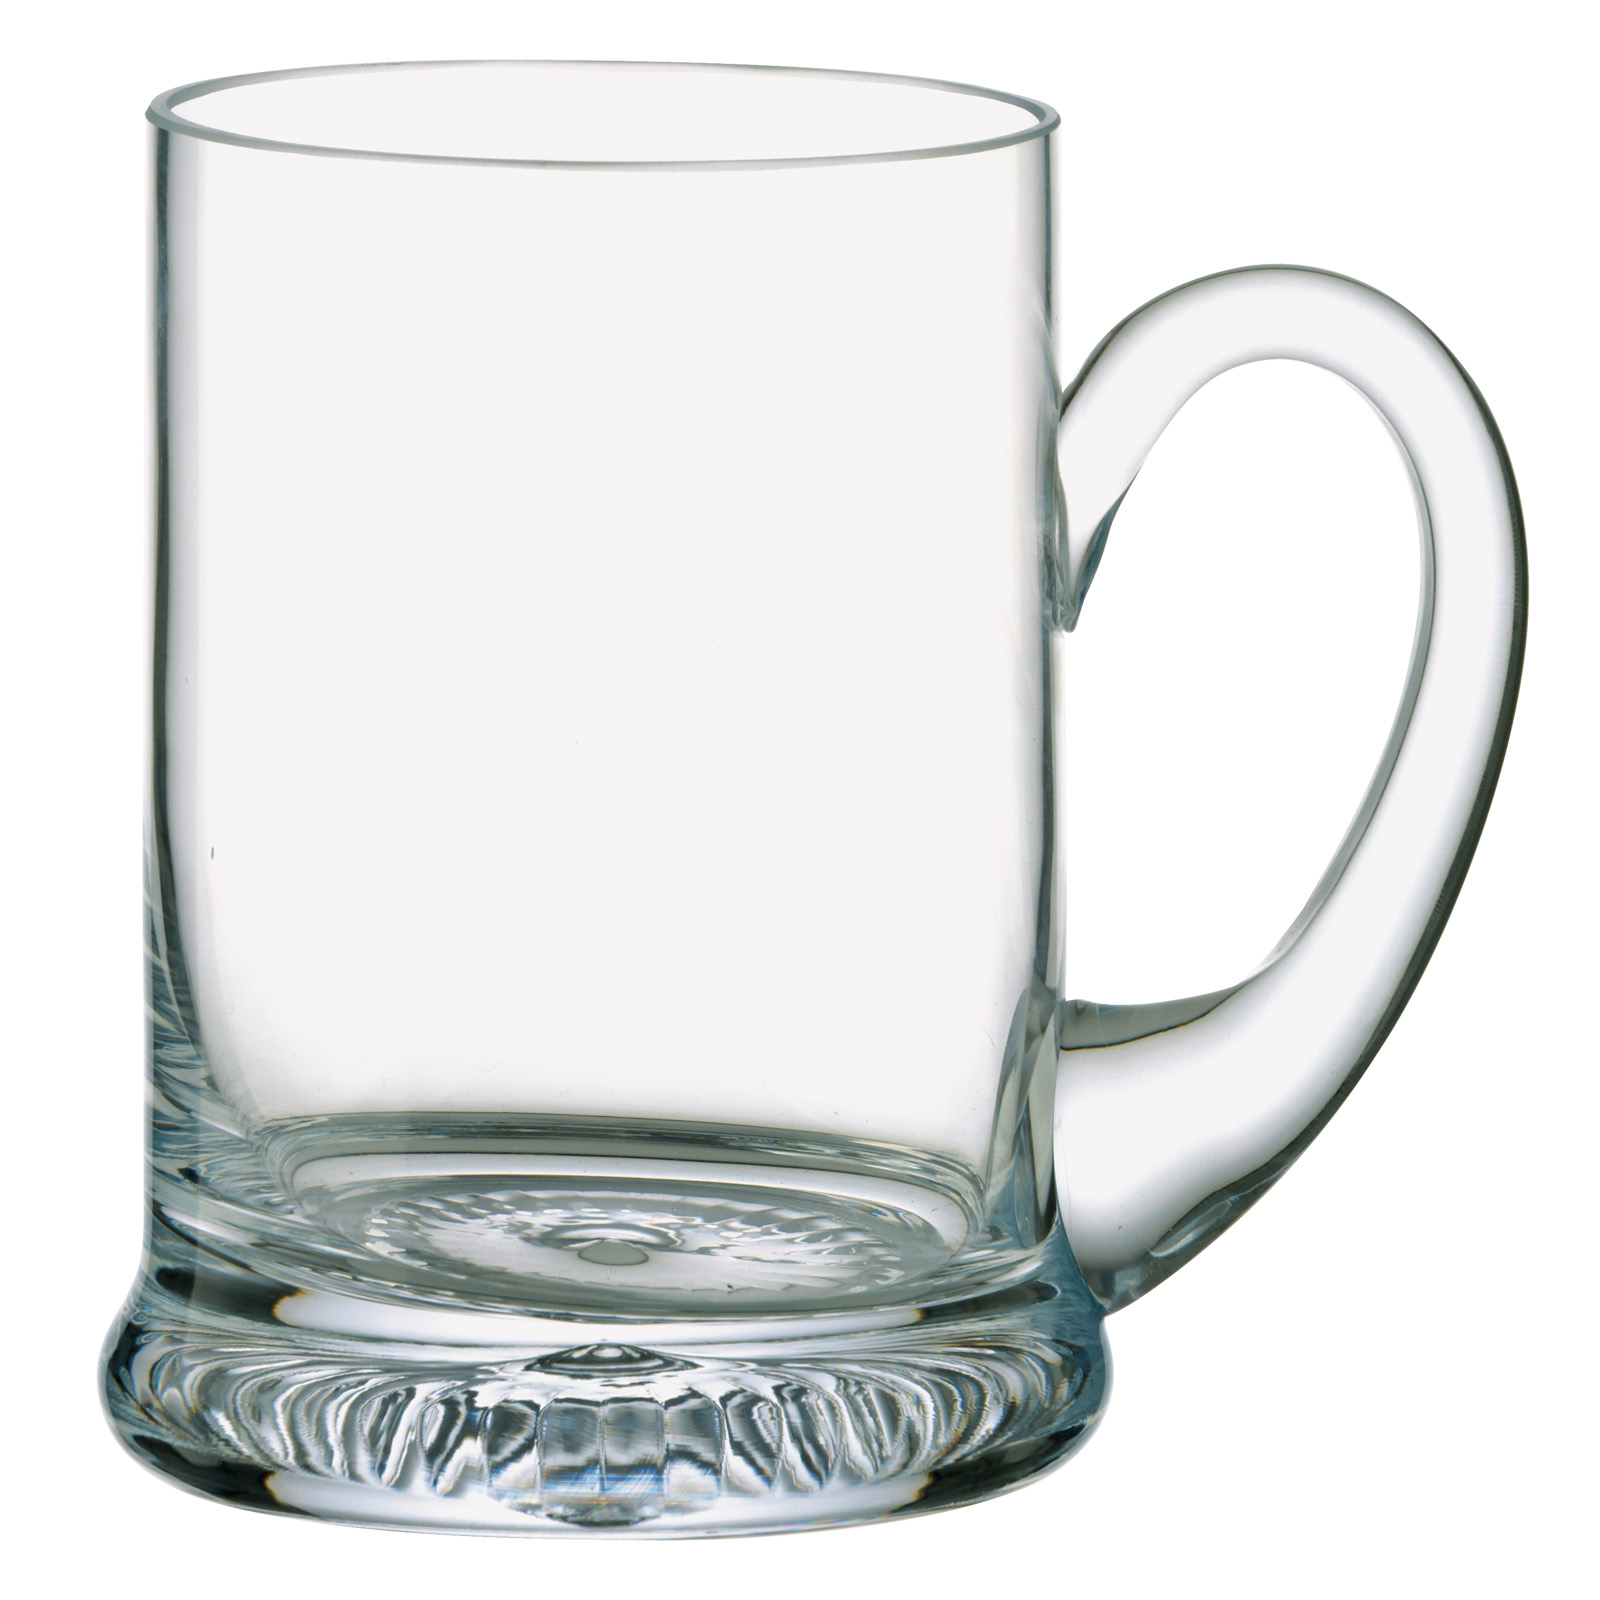 Classic Star Based Tankard by Dornberger